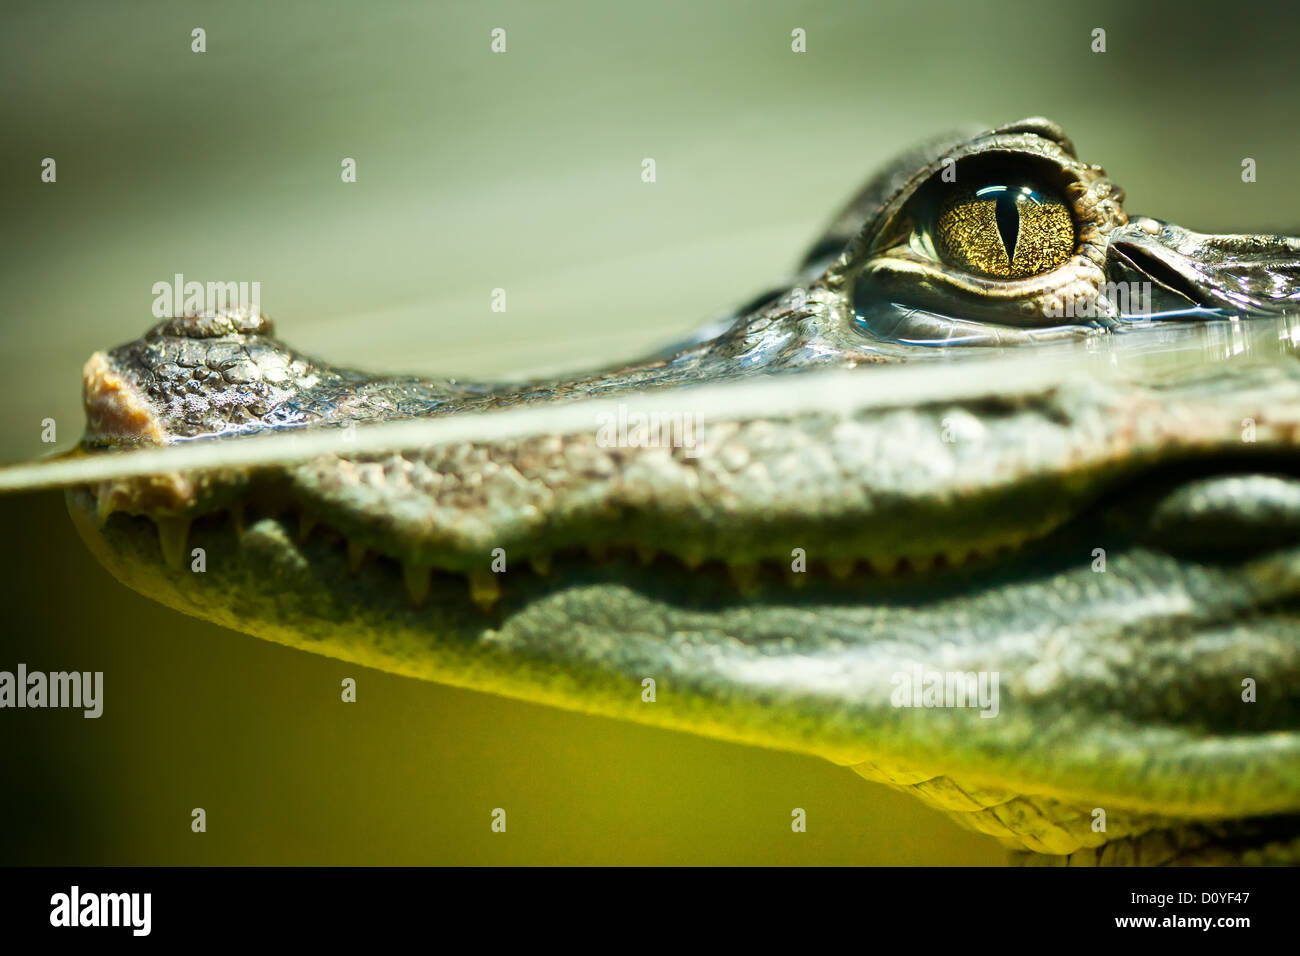 Crocodilus Caimano Foto Stock